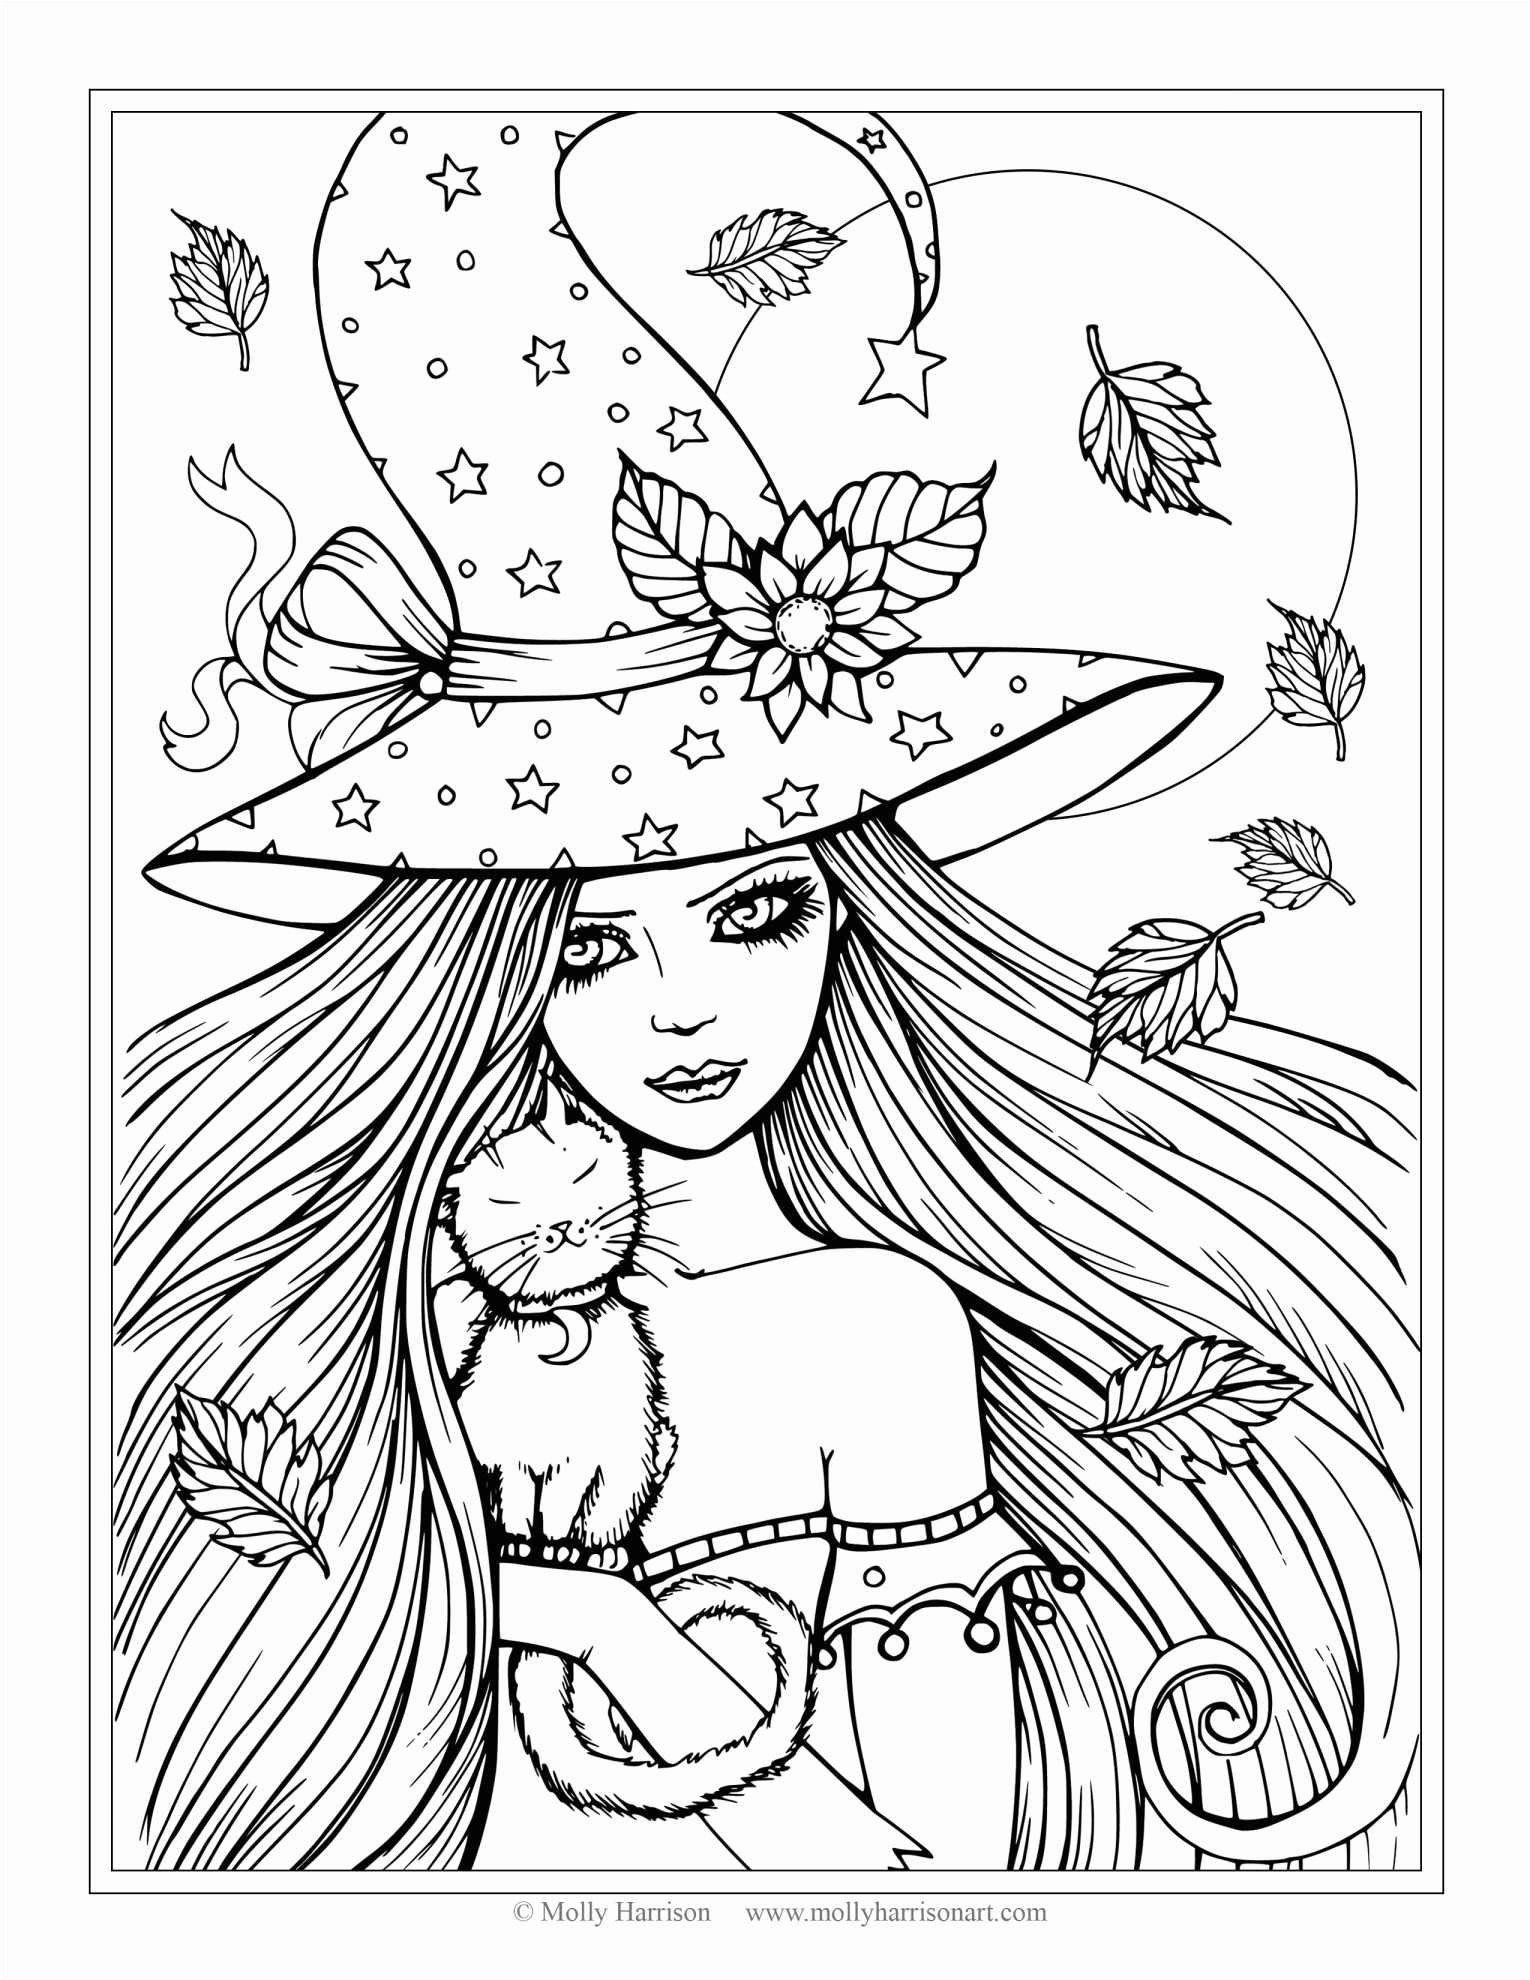 30 Lovely Jack O Lantern Coloring Page in 2020 Witch